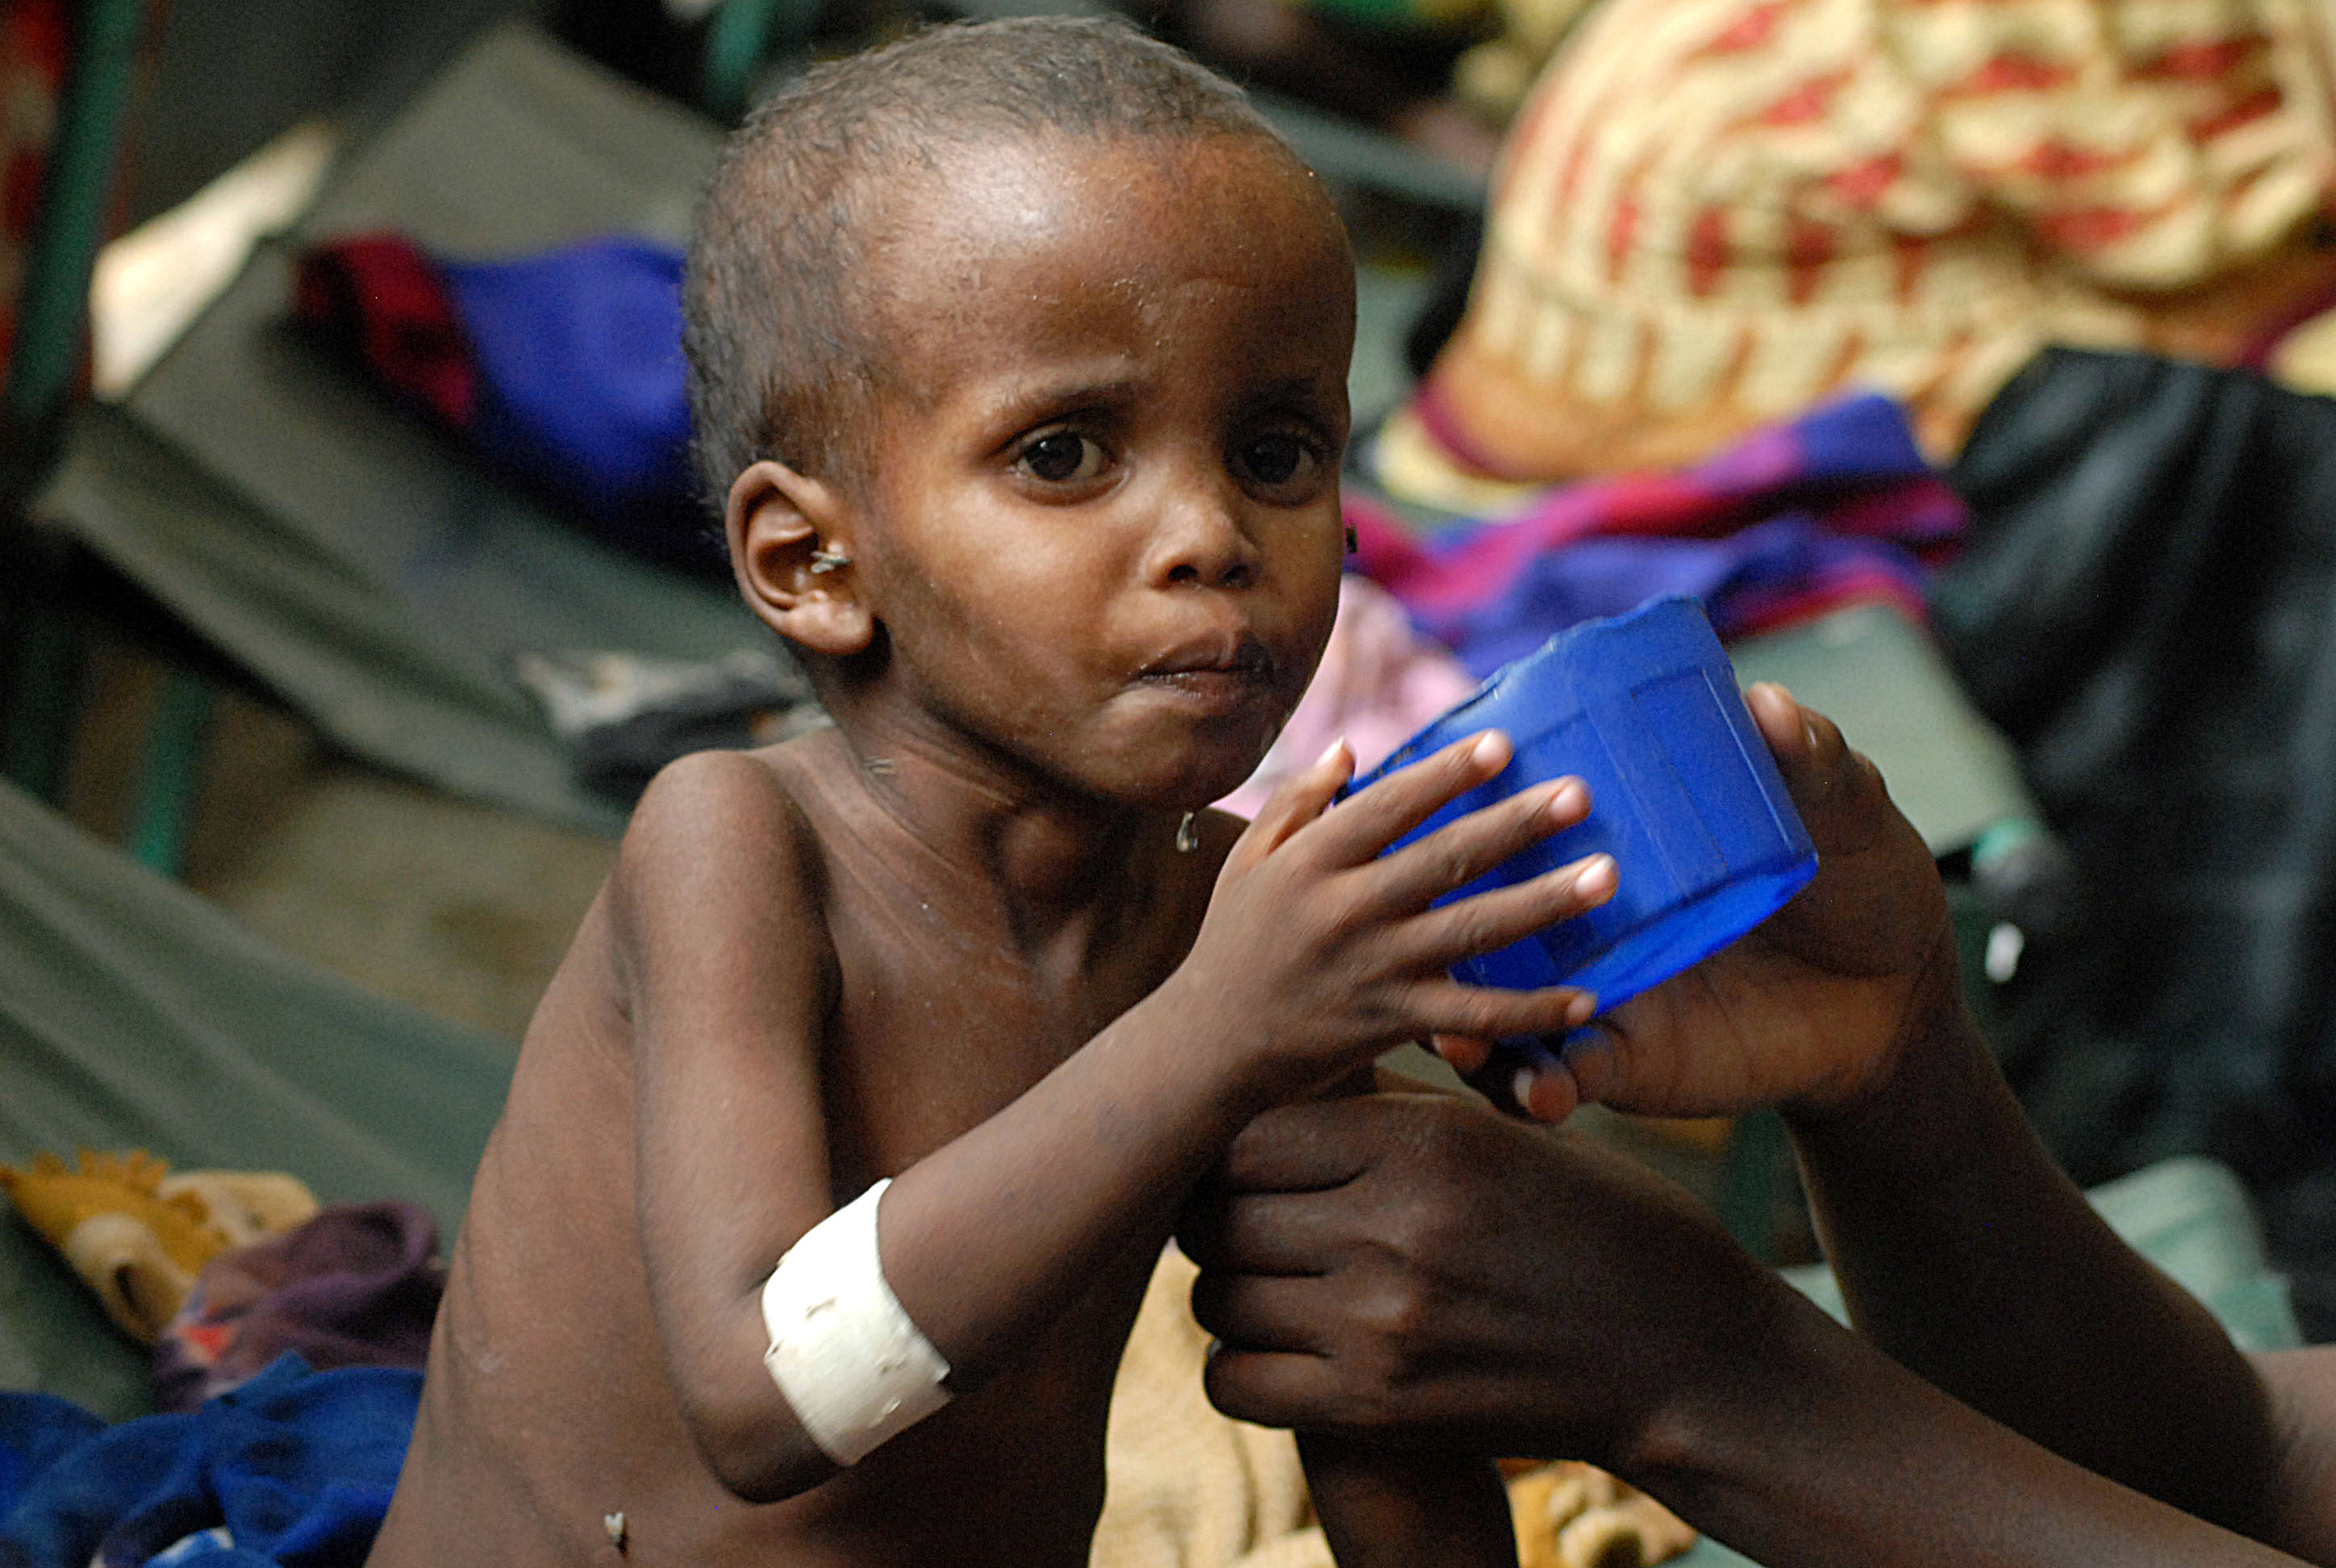 malnutrition in africa Do twelve africans die of hunger every minute a senior food and nutrition adviser to nepad, the african union development programme, made the claim recently but the available data suggests the claim is exaggerated.